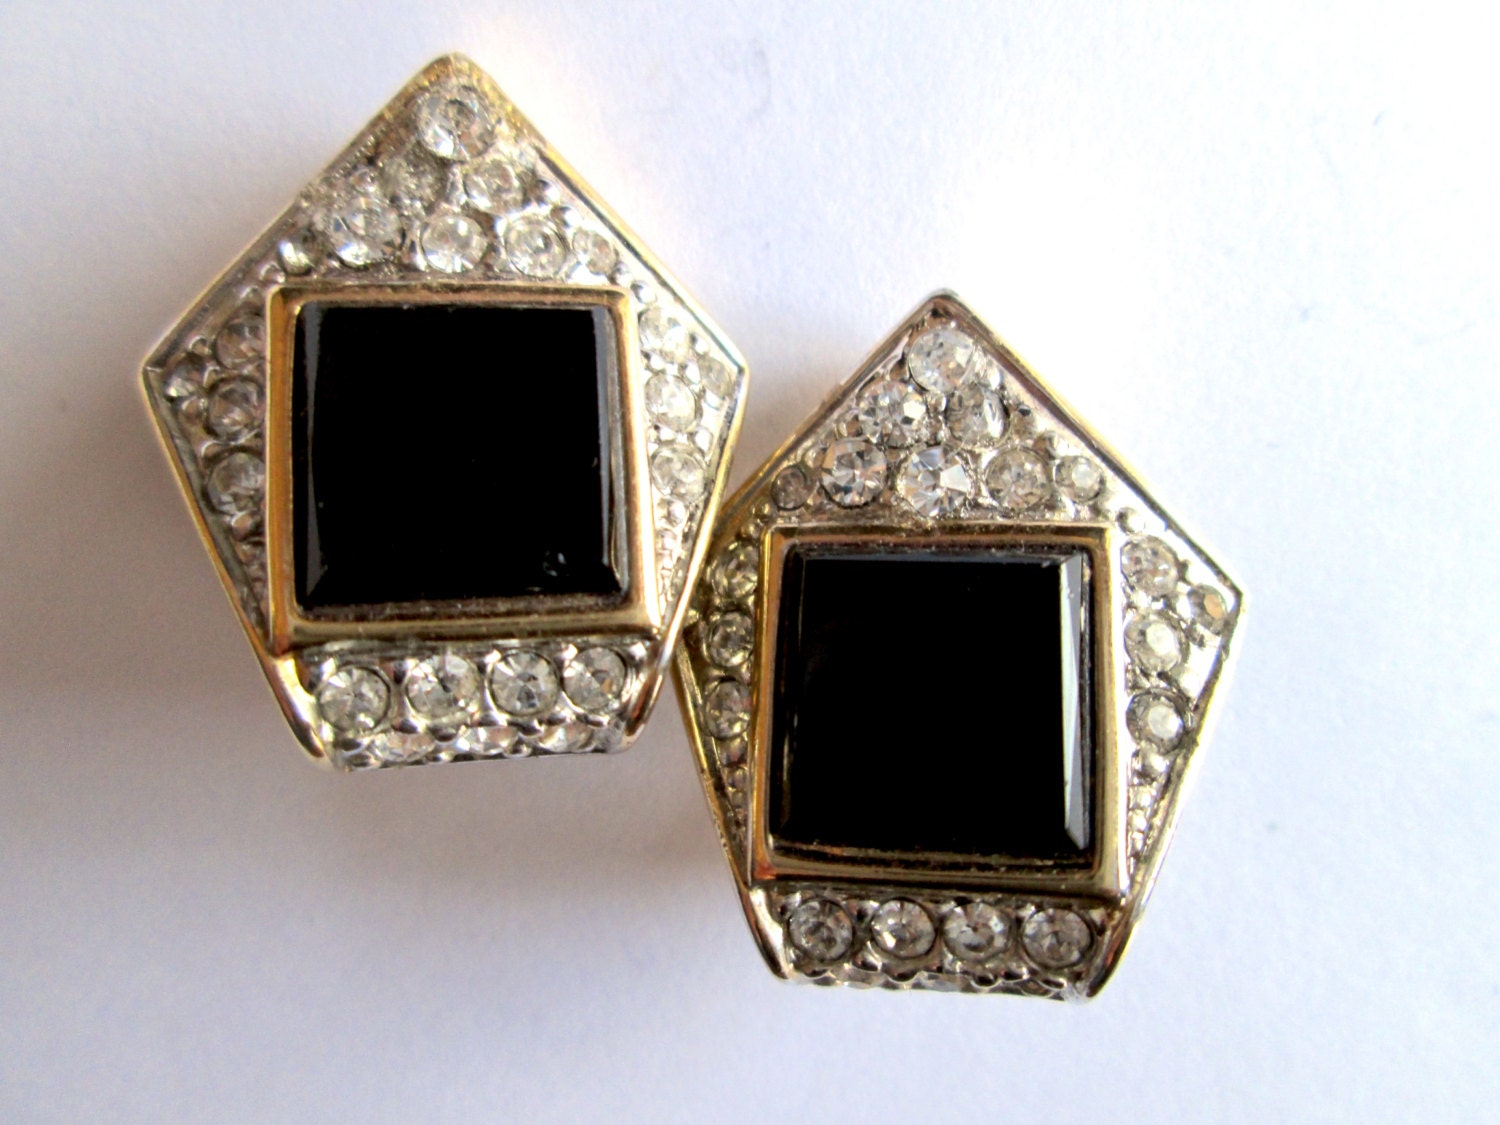 Art Deco Revival Rectangular Pin Vintage Silver tone Brooch w Faux Black Onyx with Clear Rhinestones